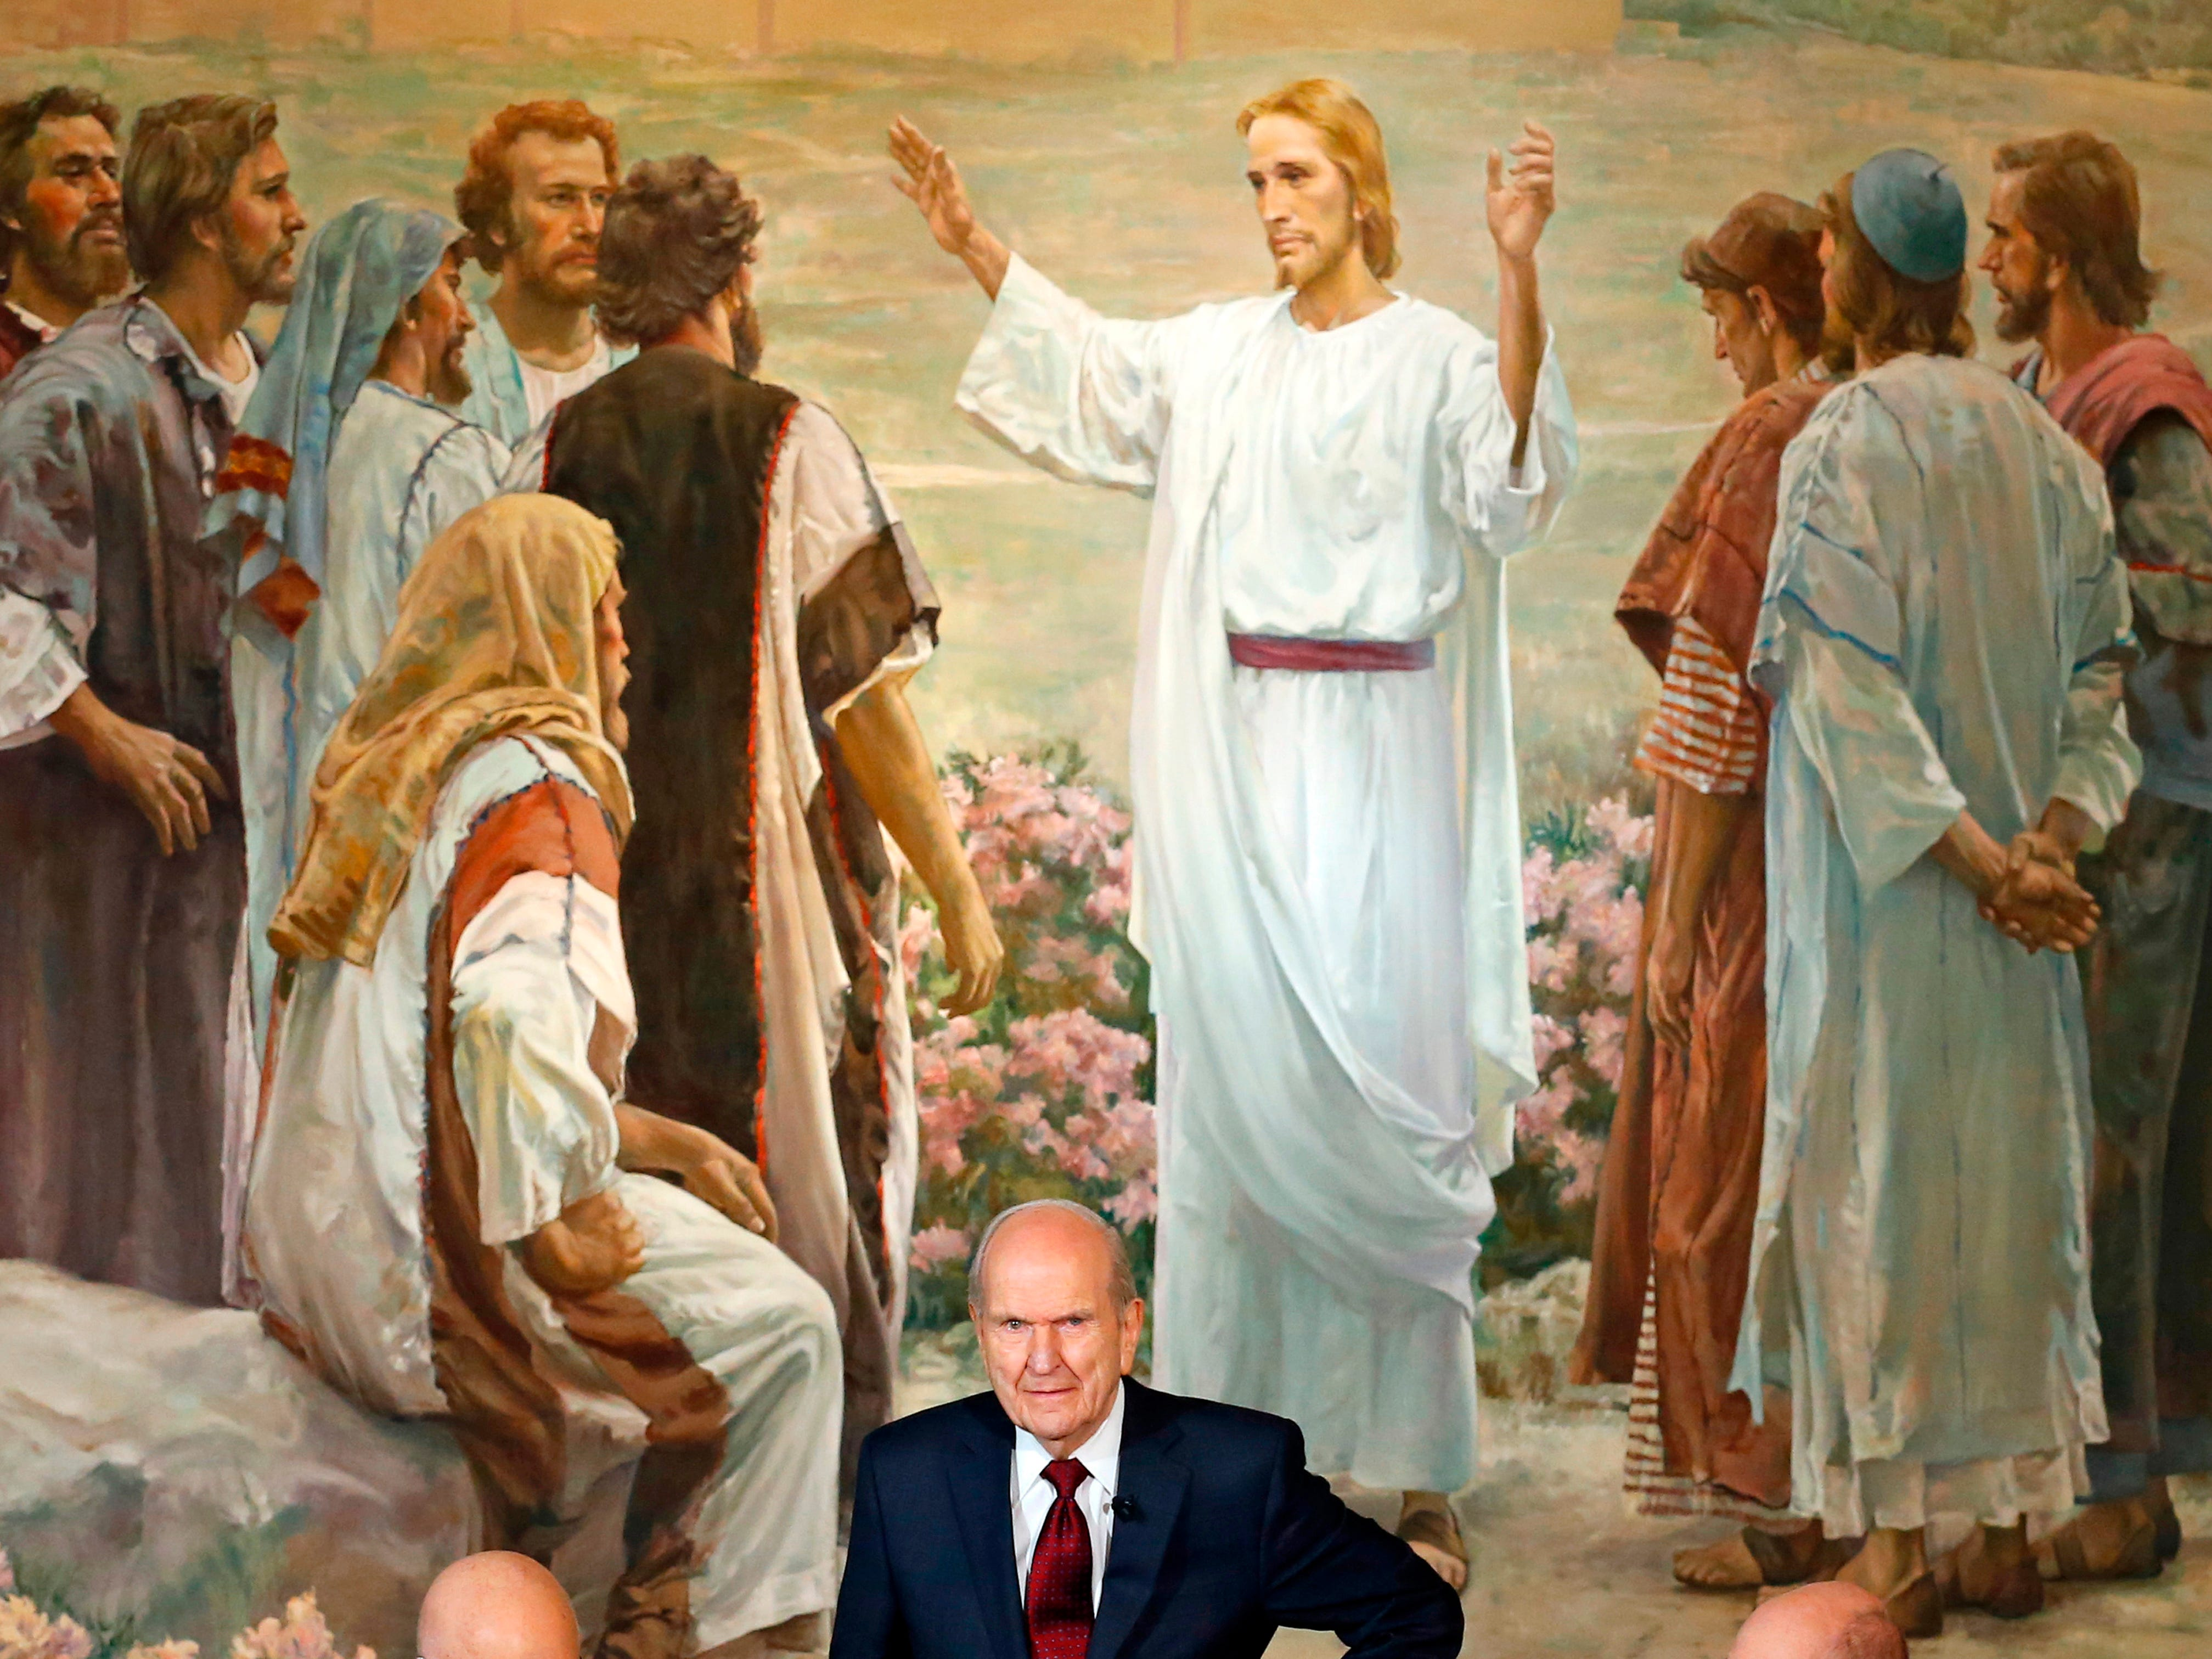 Church president: Don't use 'LDS' or 'Mormon' as substitute for full name